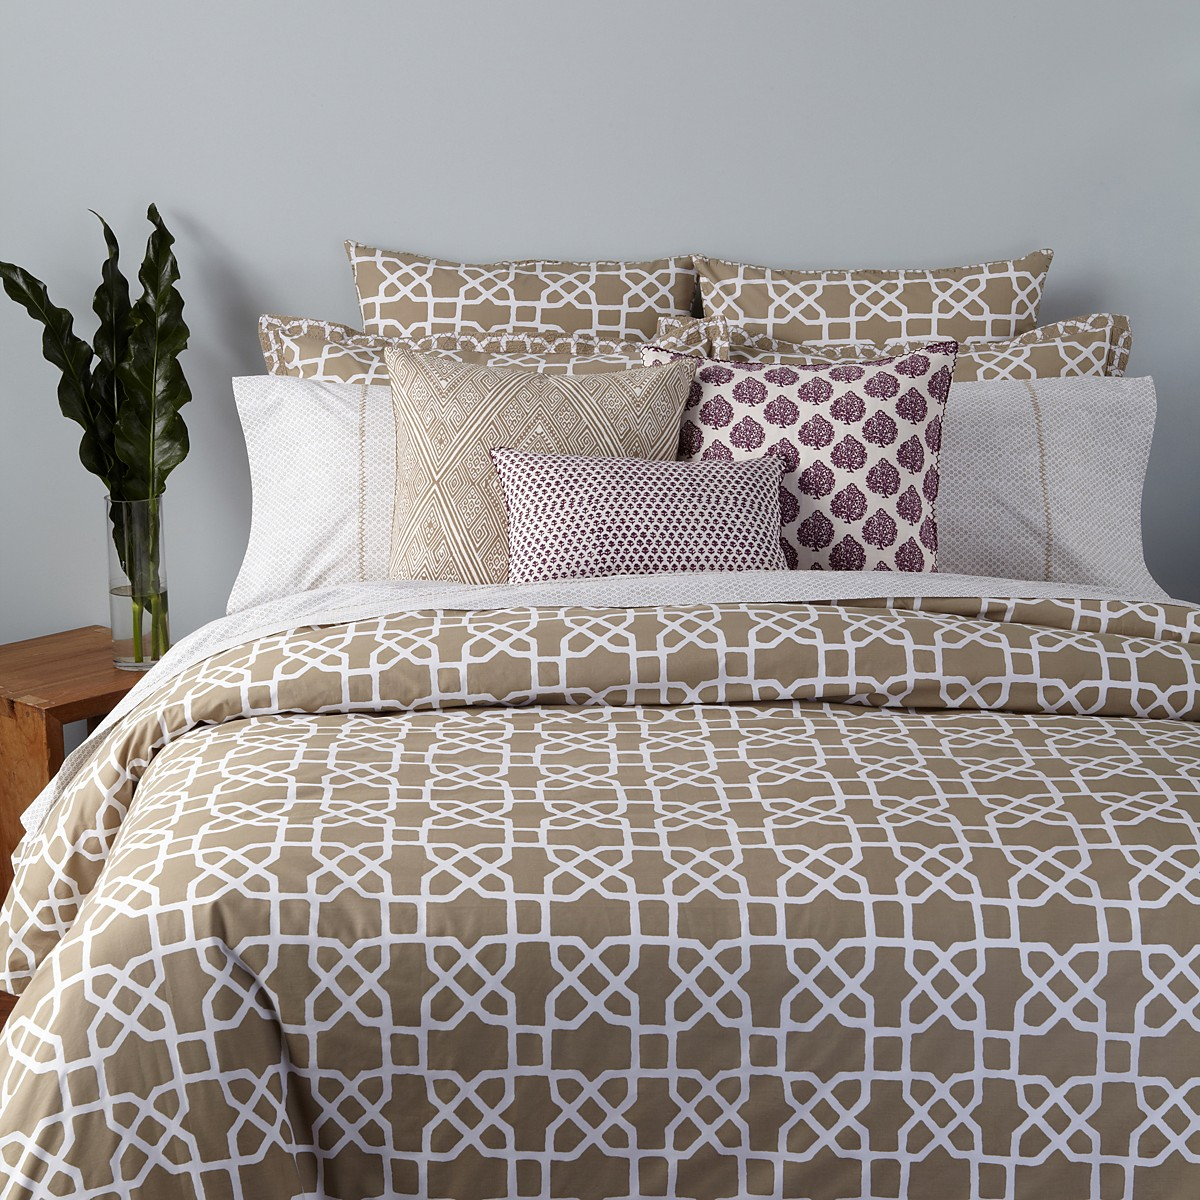 John Robshaw Lapis Quilt | Duralee Pillows | John Robshaw Pillows